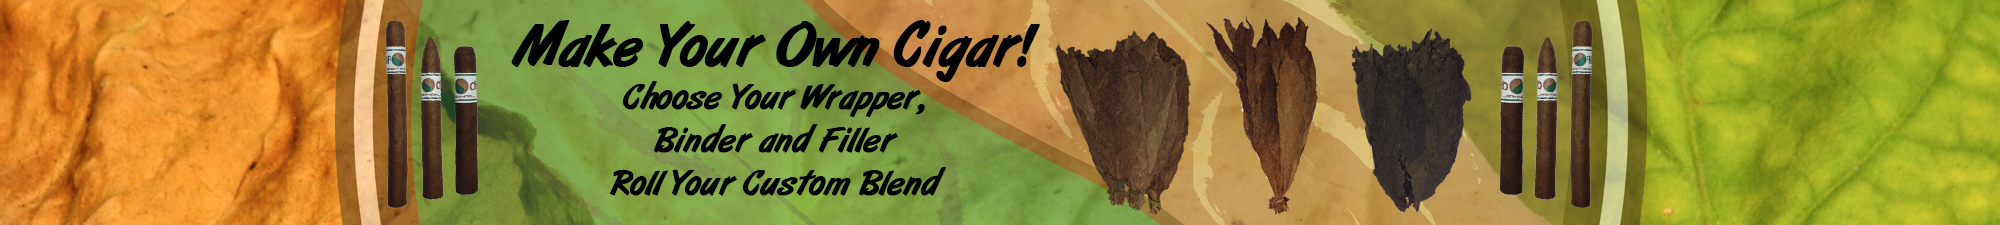 Roll your own cigars with whole leaf tobacco! Cigar rolling kits.